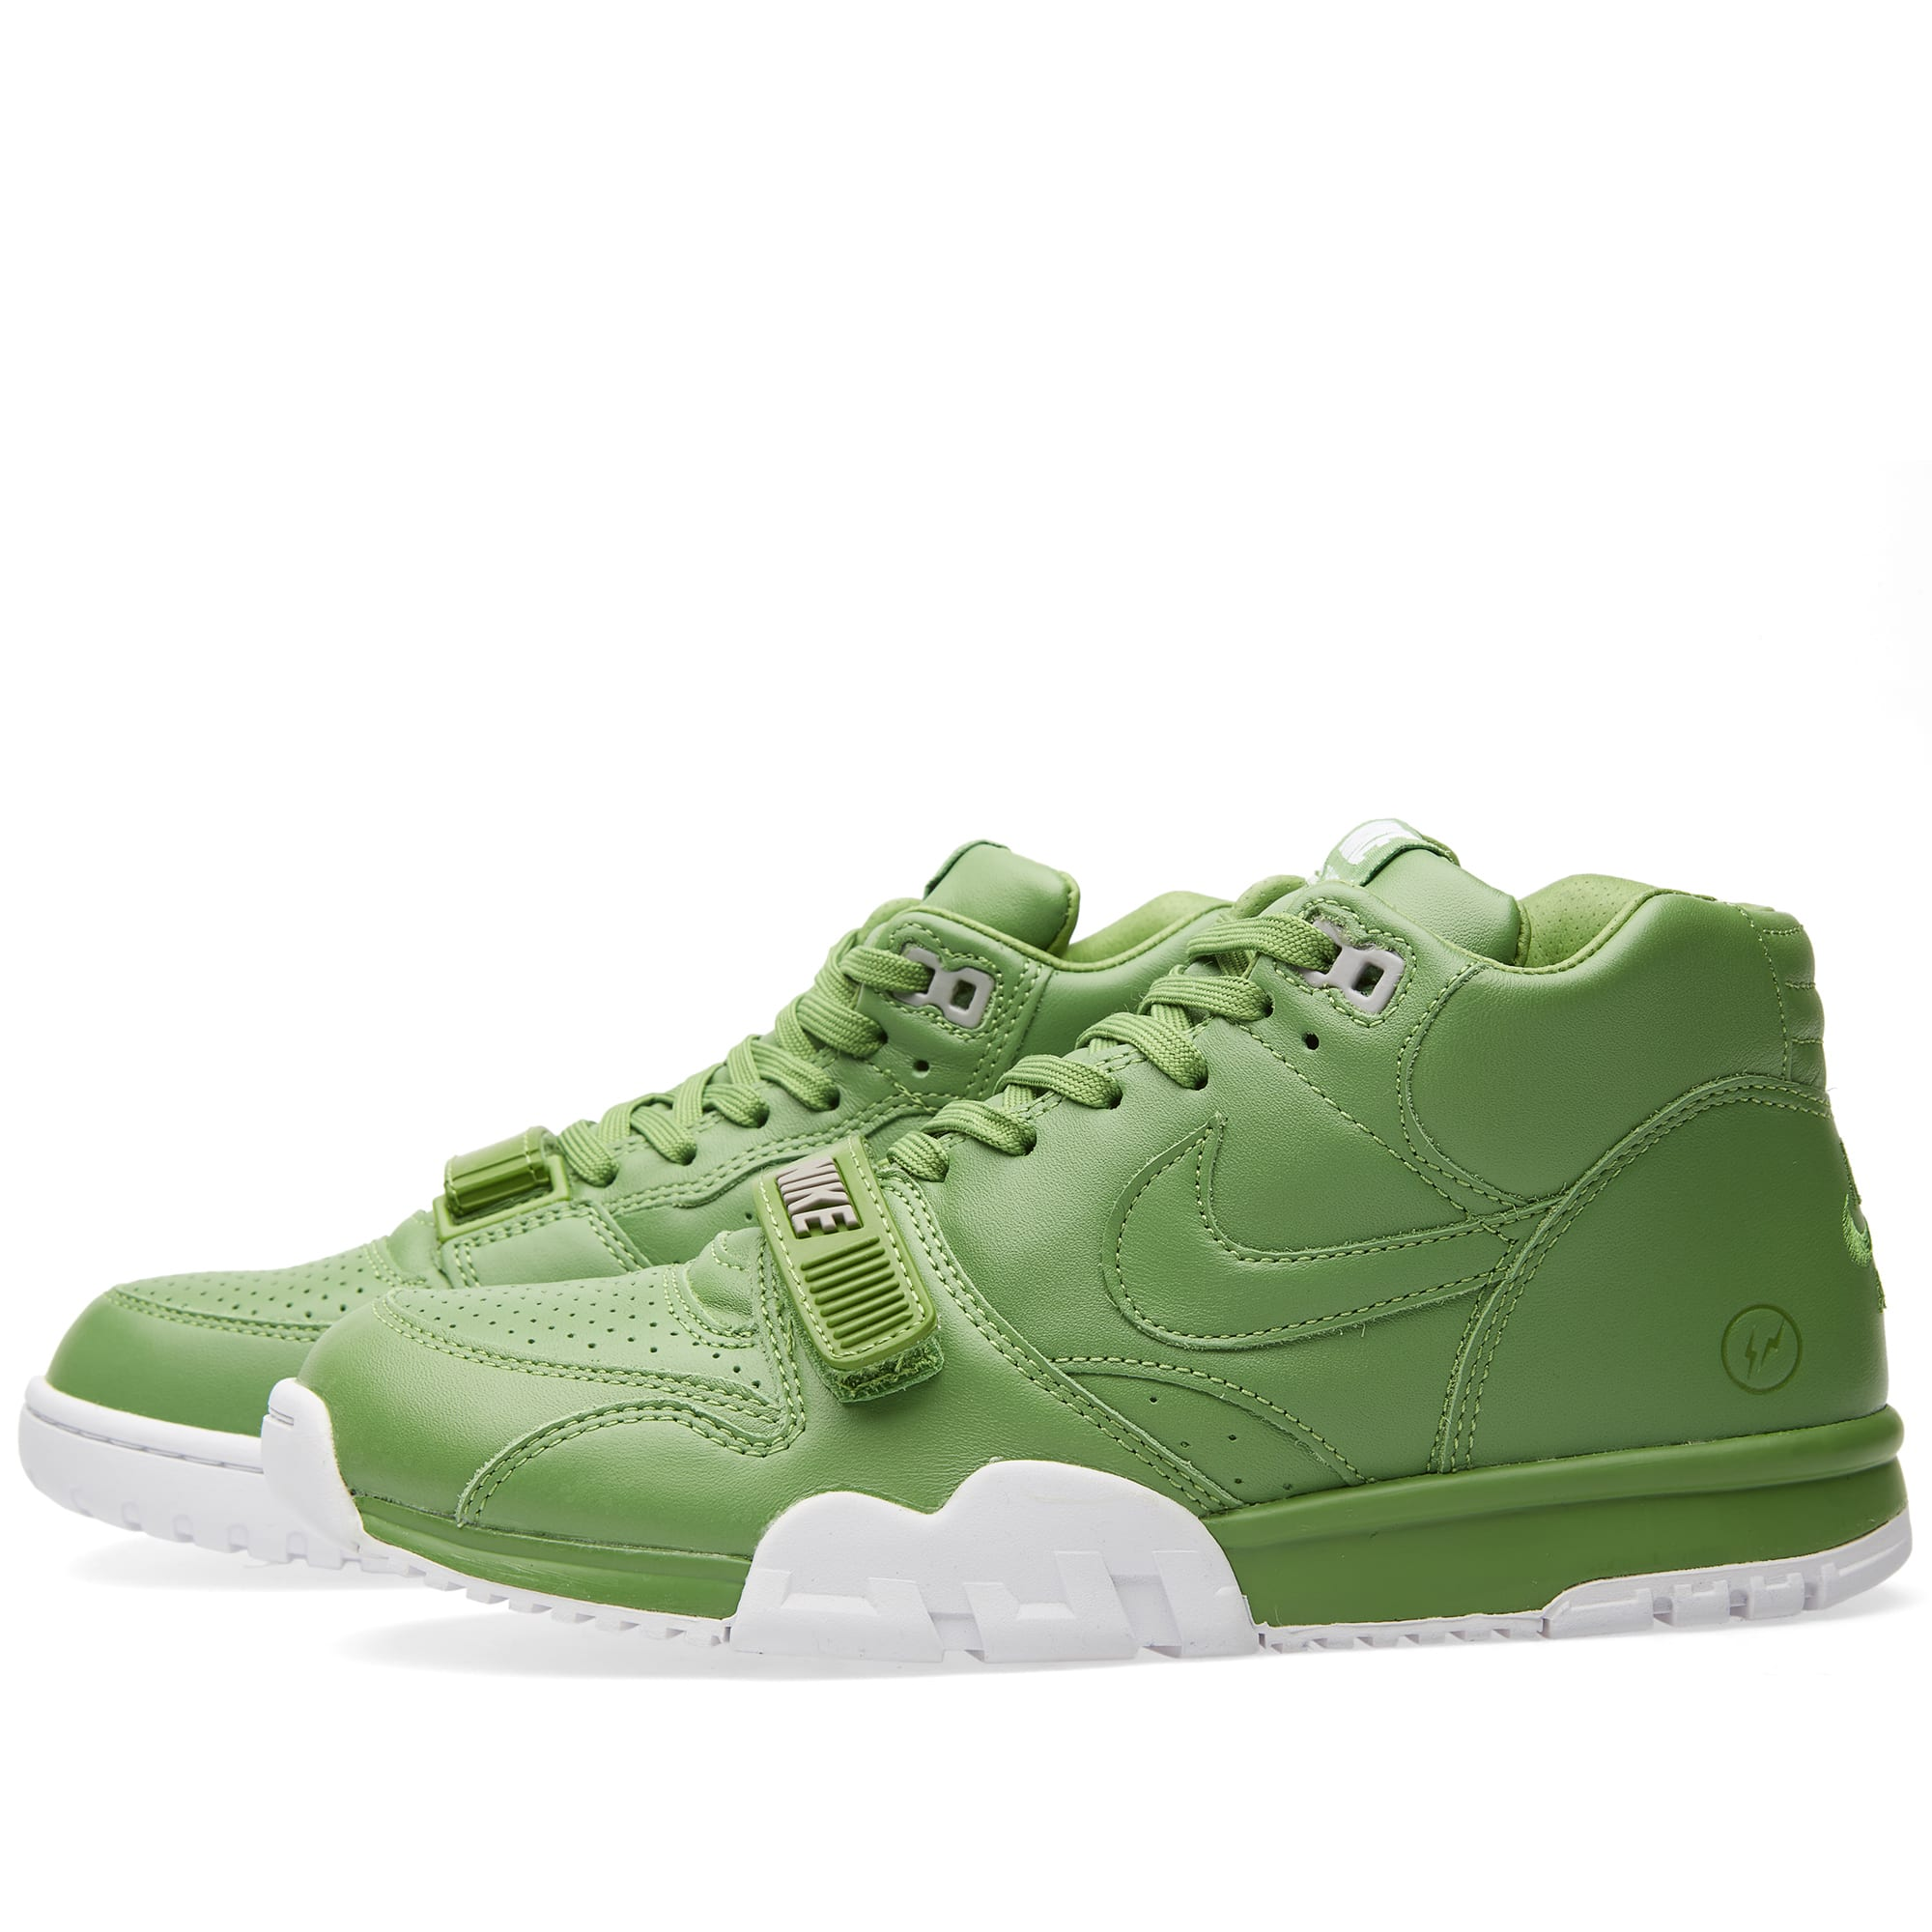 3ac54049856 Nike x Fragment Design Air Trainer 1 Mid SP Chlorophyll & White | END.